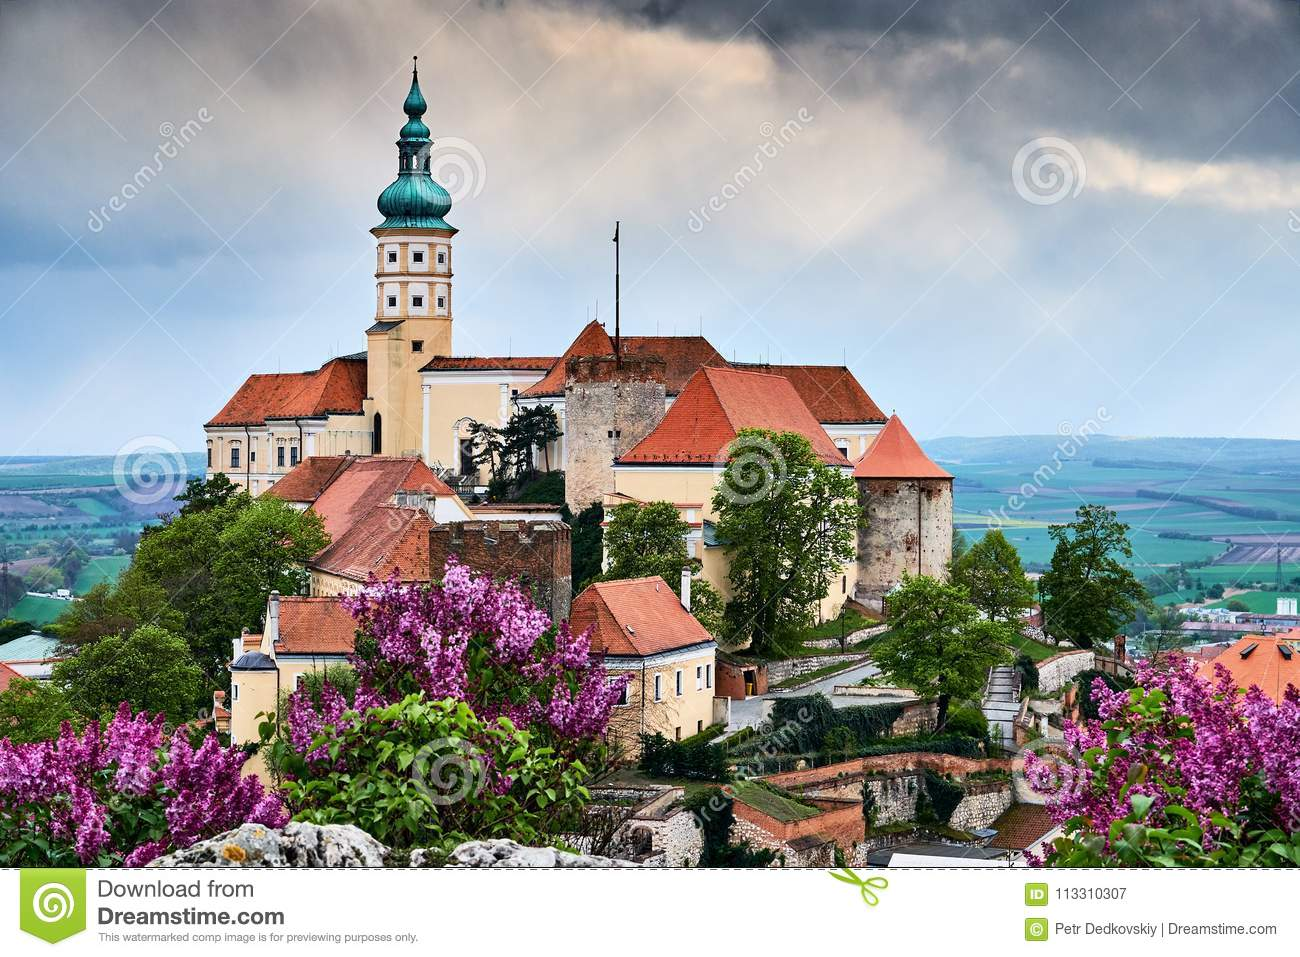 Mikulov castle or mikulov chateau on top of rock colorful panorama view over rooftops on the city.South Moravia Czech republic